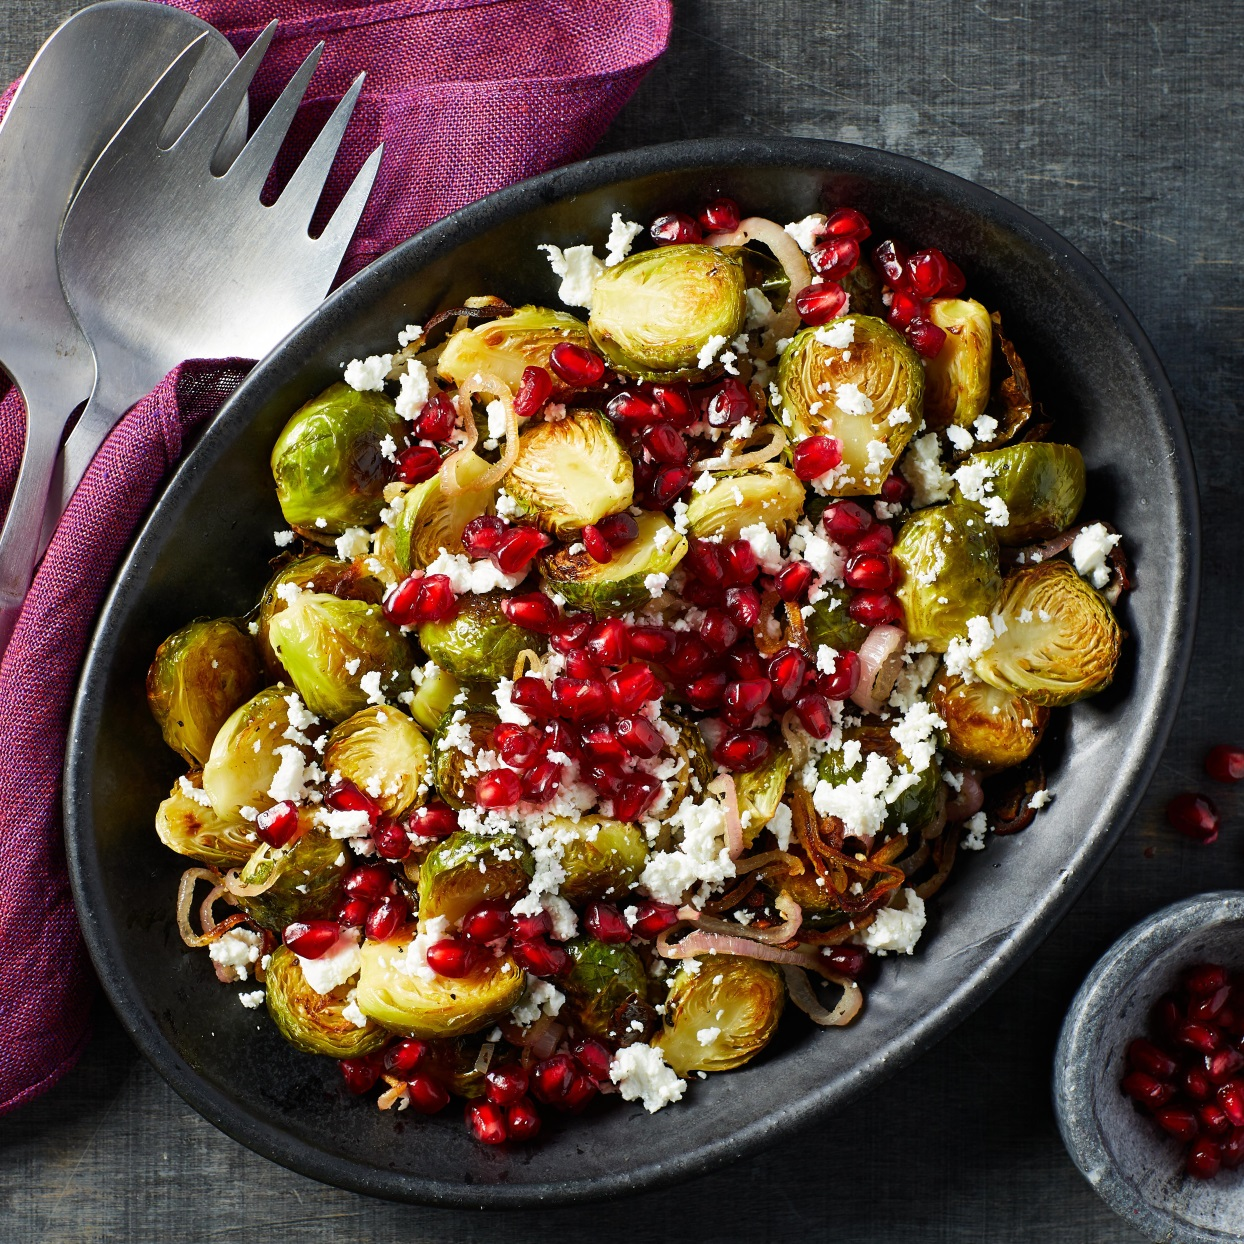 This gorgeous warm salad with nutty roasted Brussels sprouts, sweet-tart pomegranate seeds and creamy goat cheese is perfect for any winter meal--from a weeknight dinner to Christmas dinner or any other holiday celebration. The recipe is easily doubled if you are entertaining a crowd: just be sure to spread the sprouts out (use 2 pans if necessary) so they roast instead of steaming. Source: EatingWell.com, December 2019